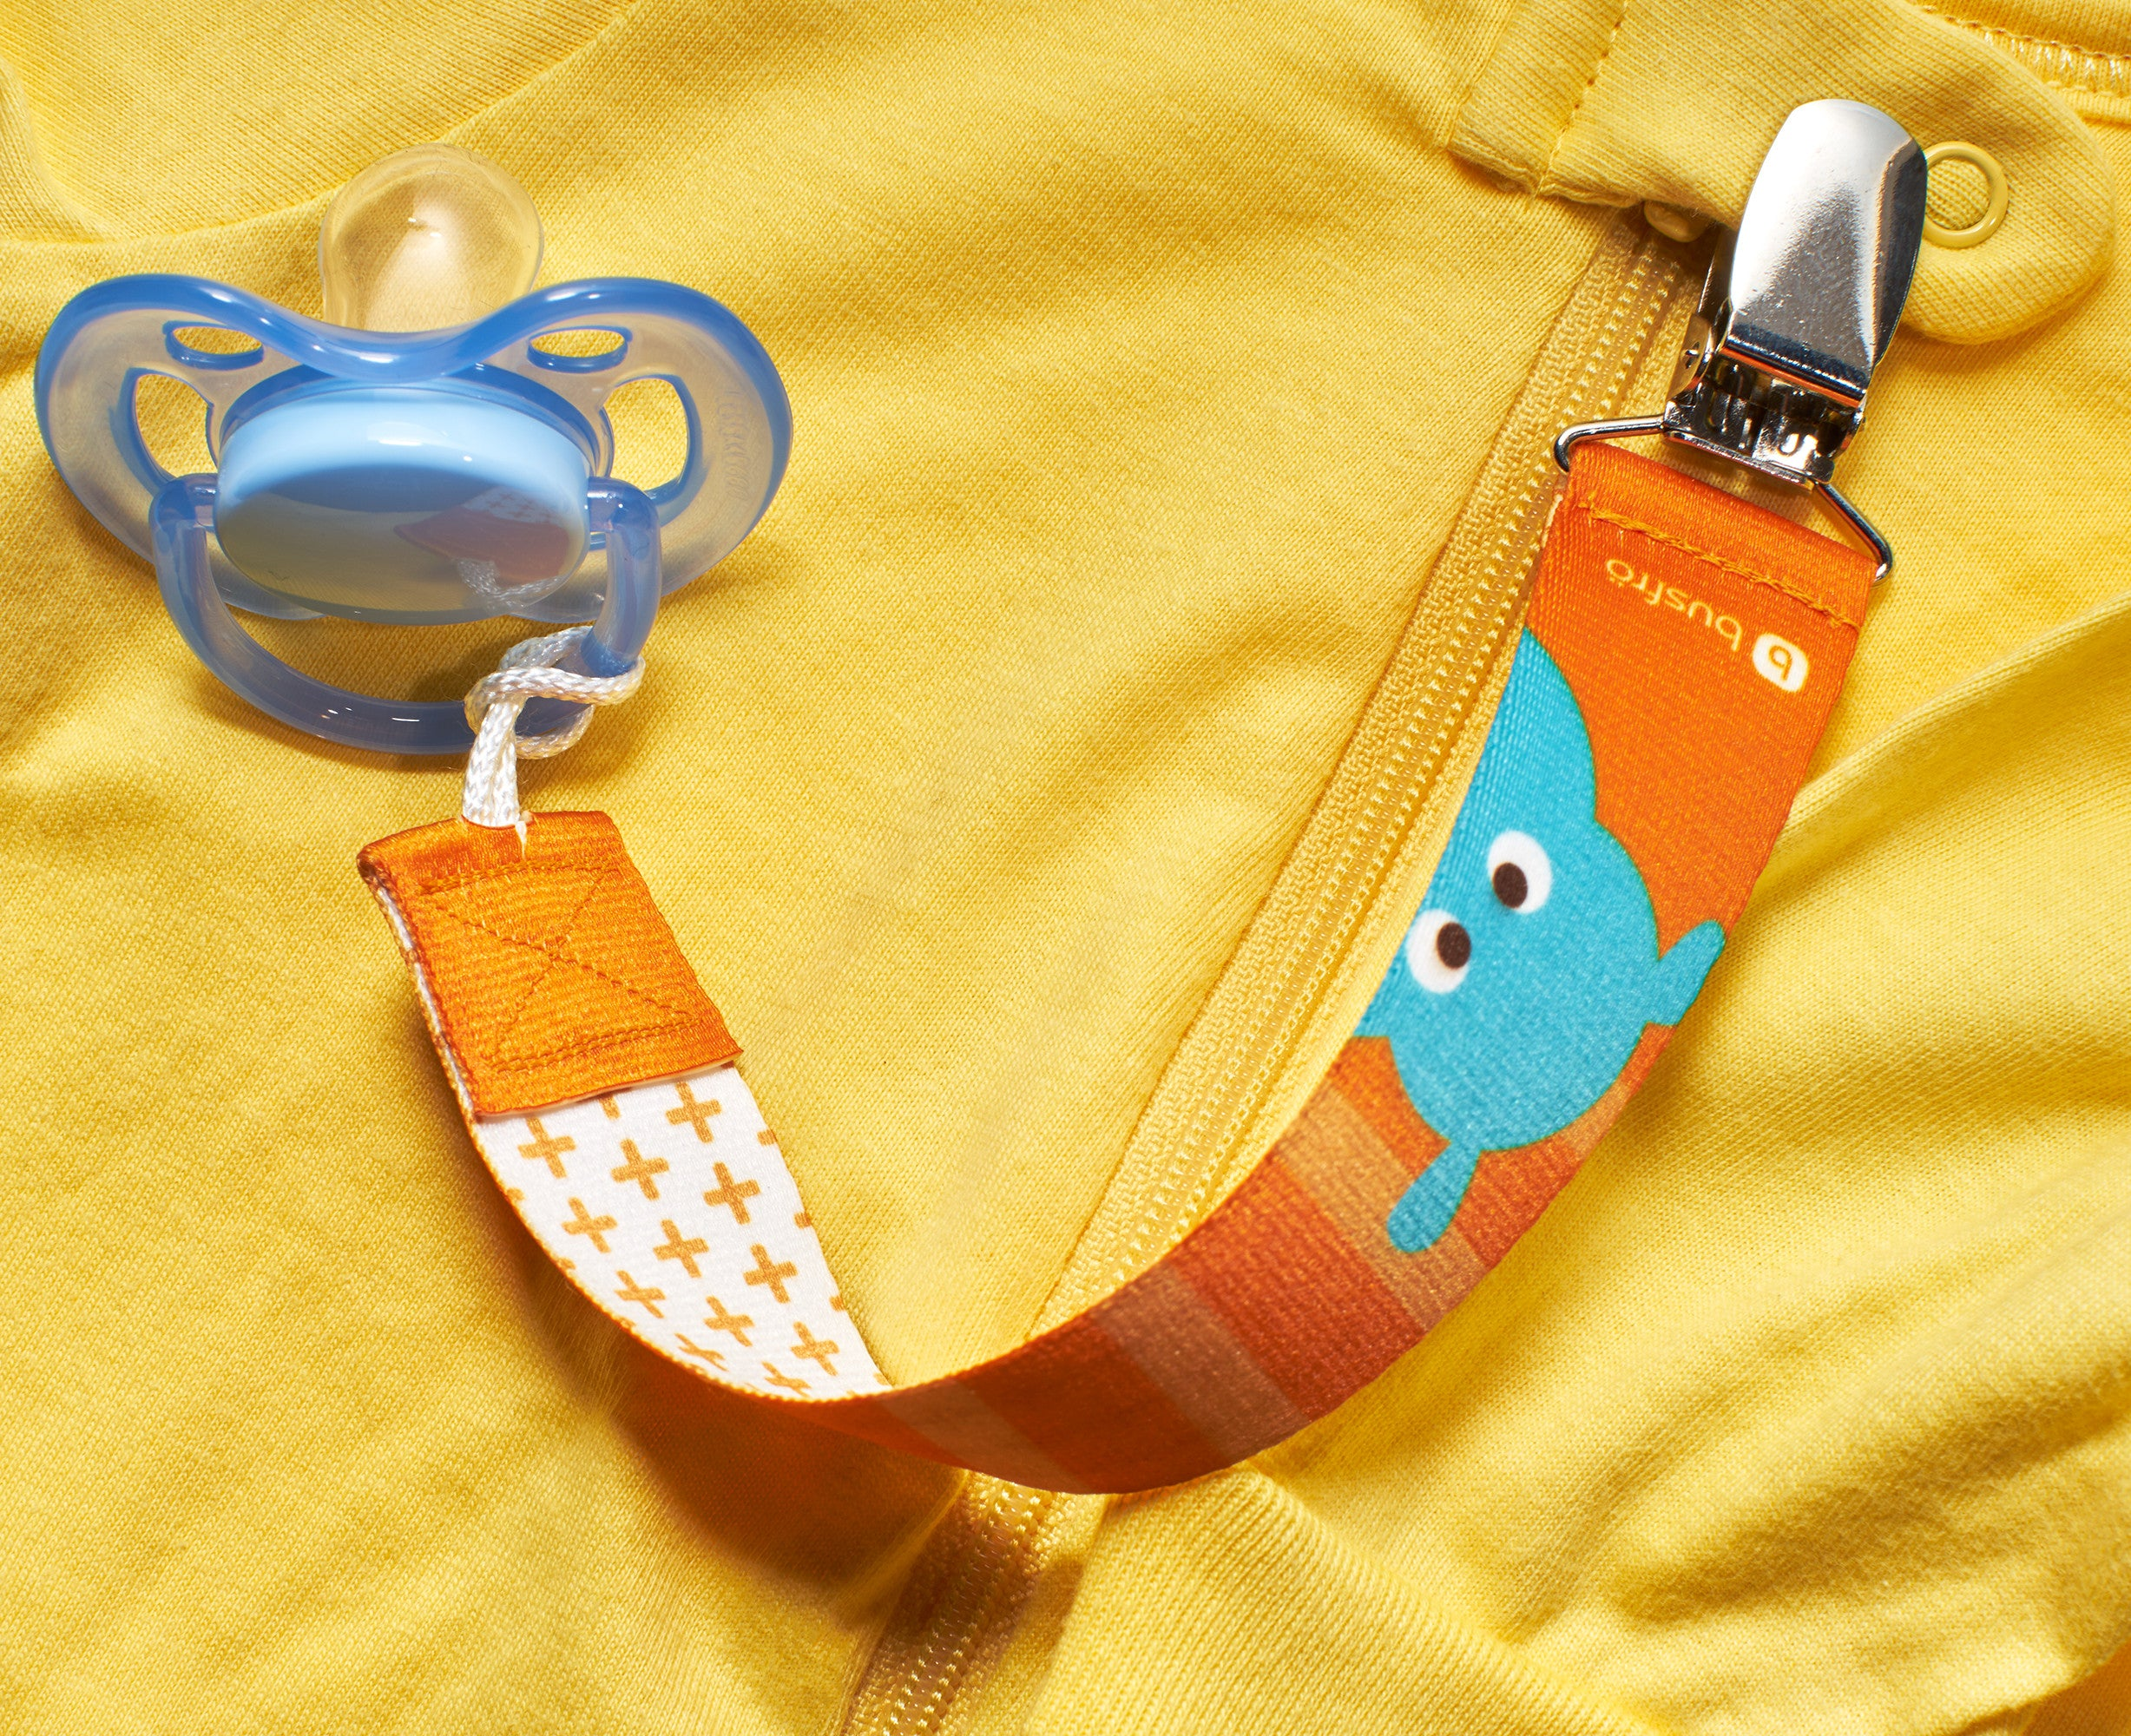 http://busfro.com/products/pacifier-clips-3-pack-universal-fit-best